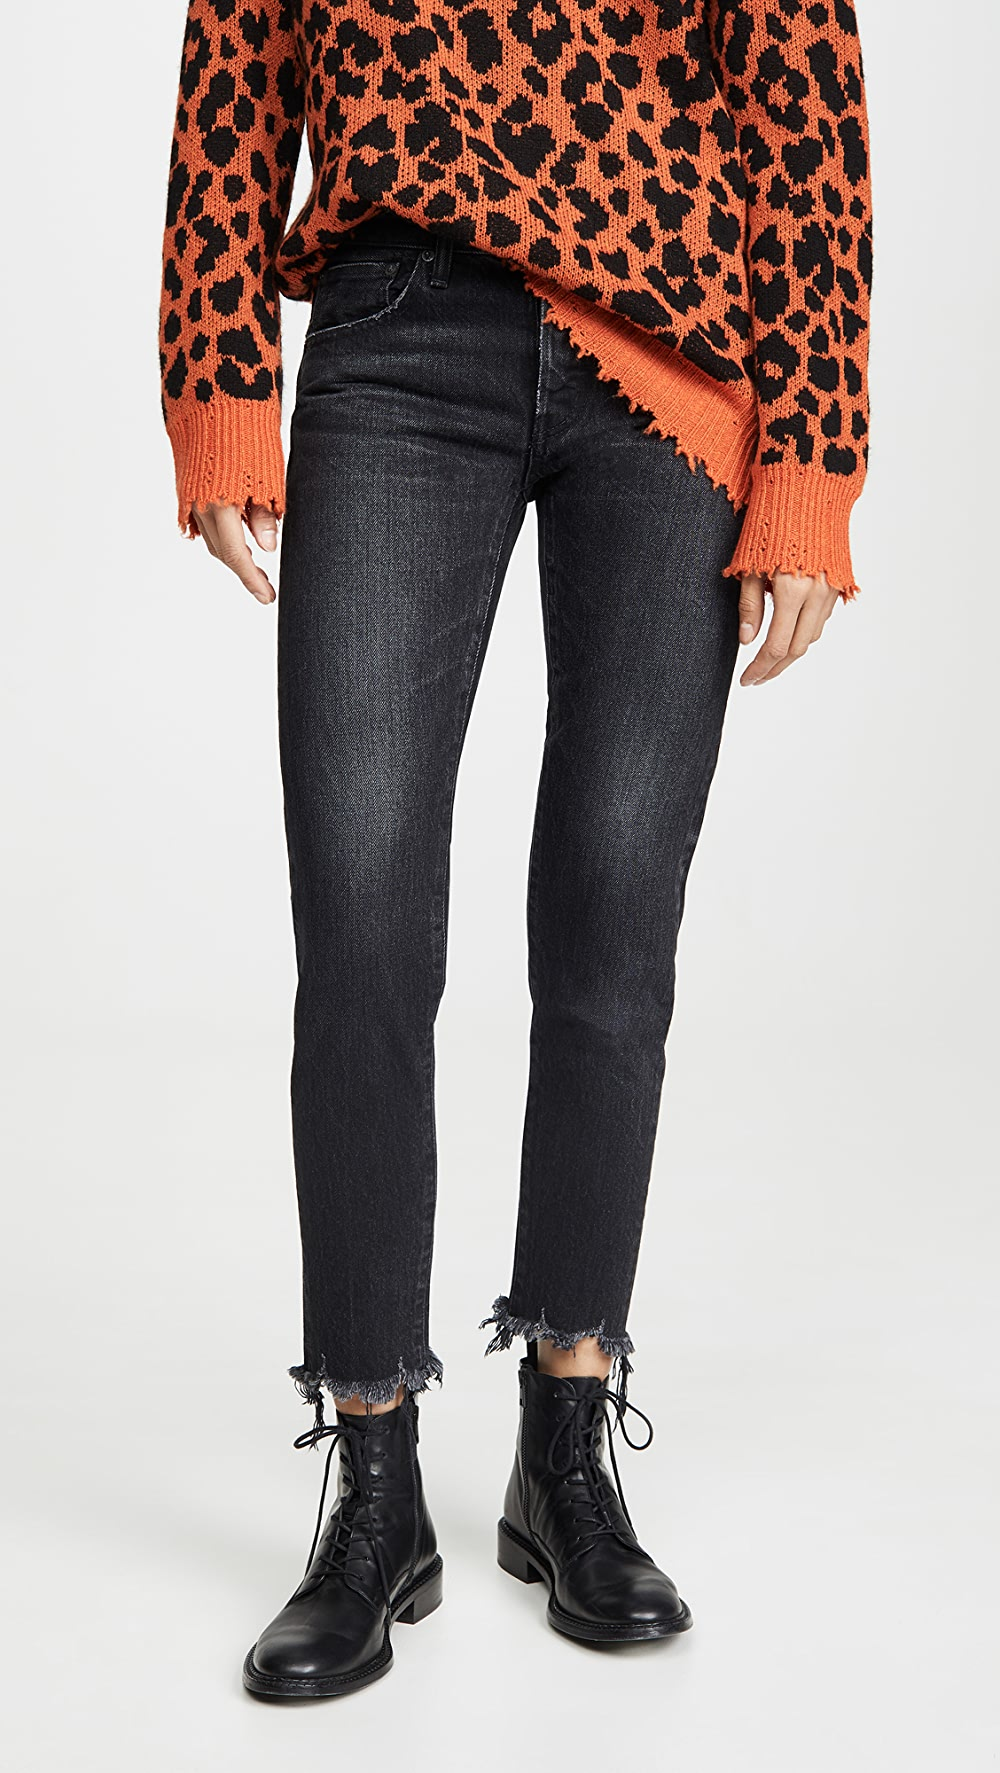 United Moussy Vintage - Staley Tapered Jeans Choice Materials